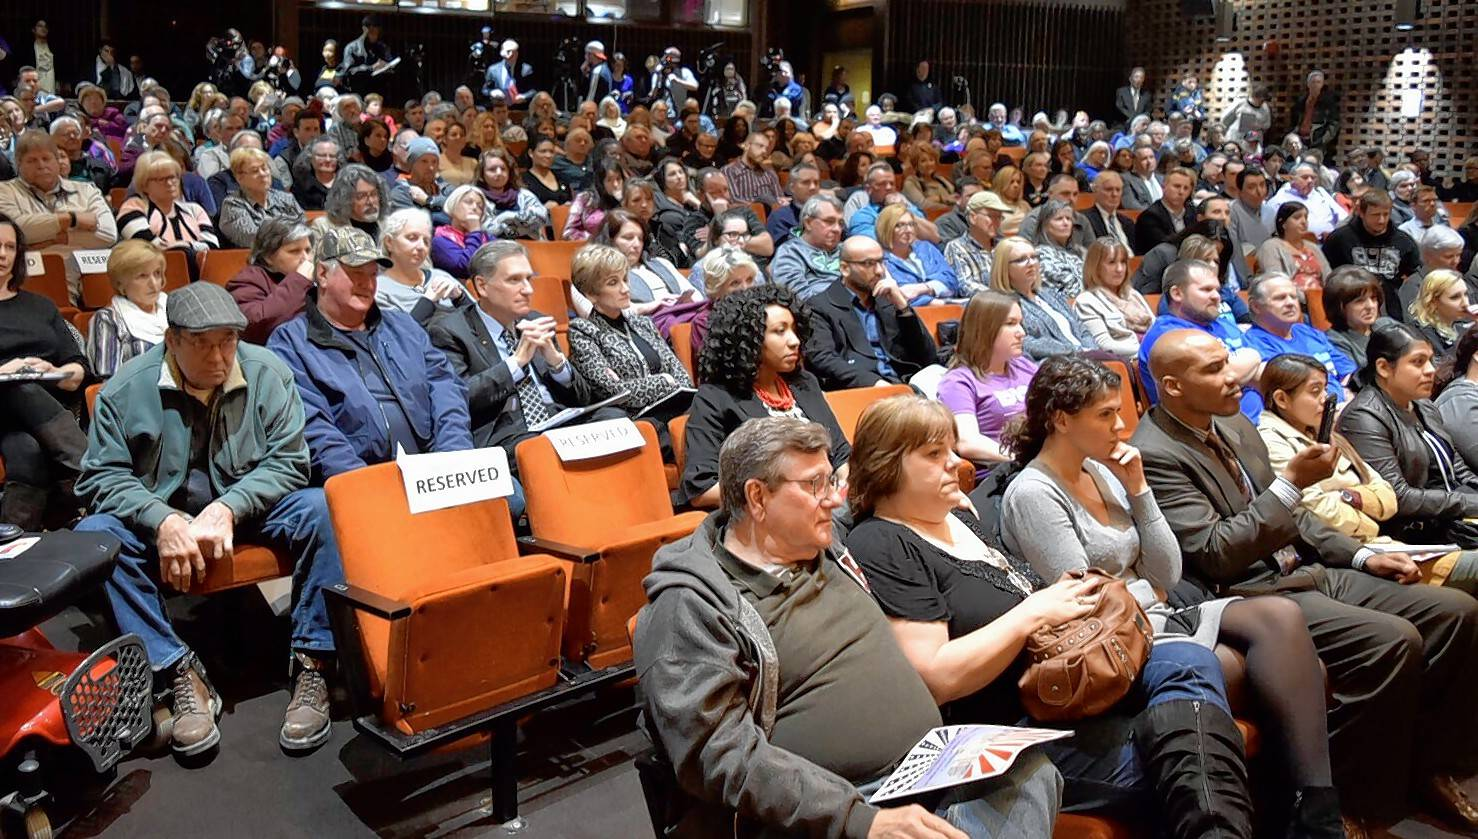 The SIU Student Center Auditorium was packed to near capacity for Tuesday's forum.